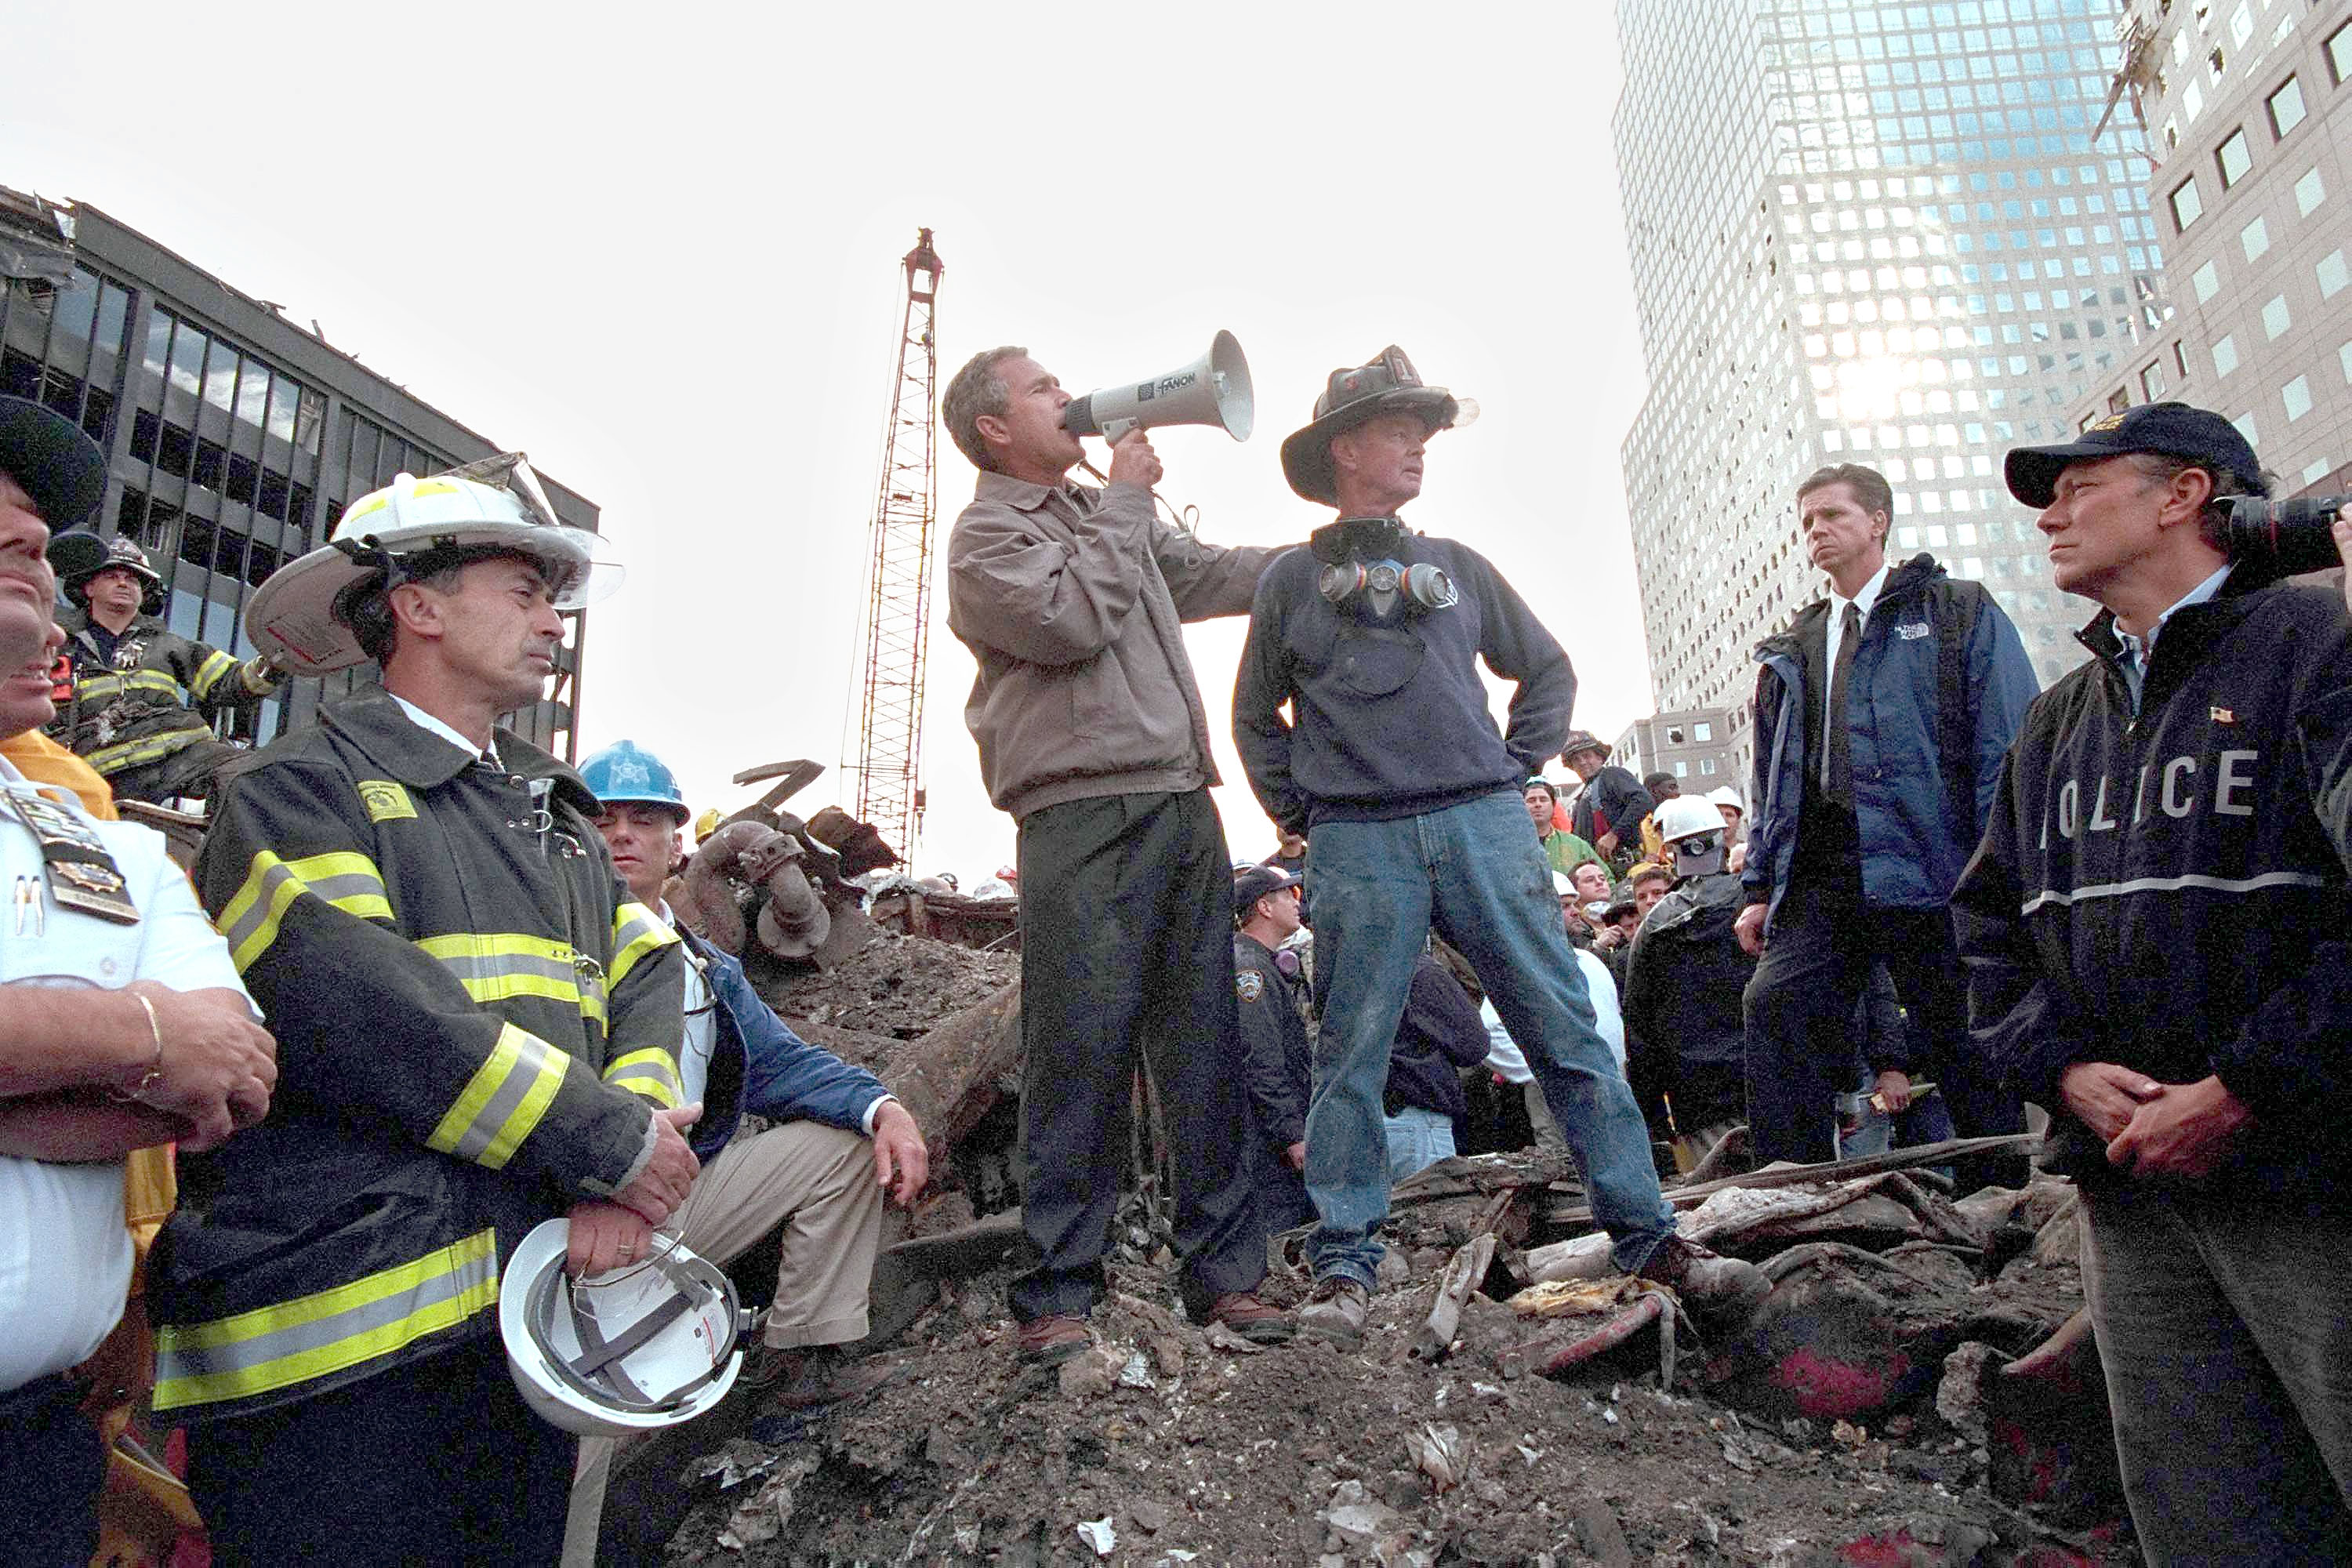 U.S. President George W. Bush speaks to rescue workers, firefighters and police officers from the rubble of Ground Zero September 14, 2001 in New York City. Standing with Bush is retired firefighter Bob Beckwith and at (R) is New York Governor Georg